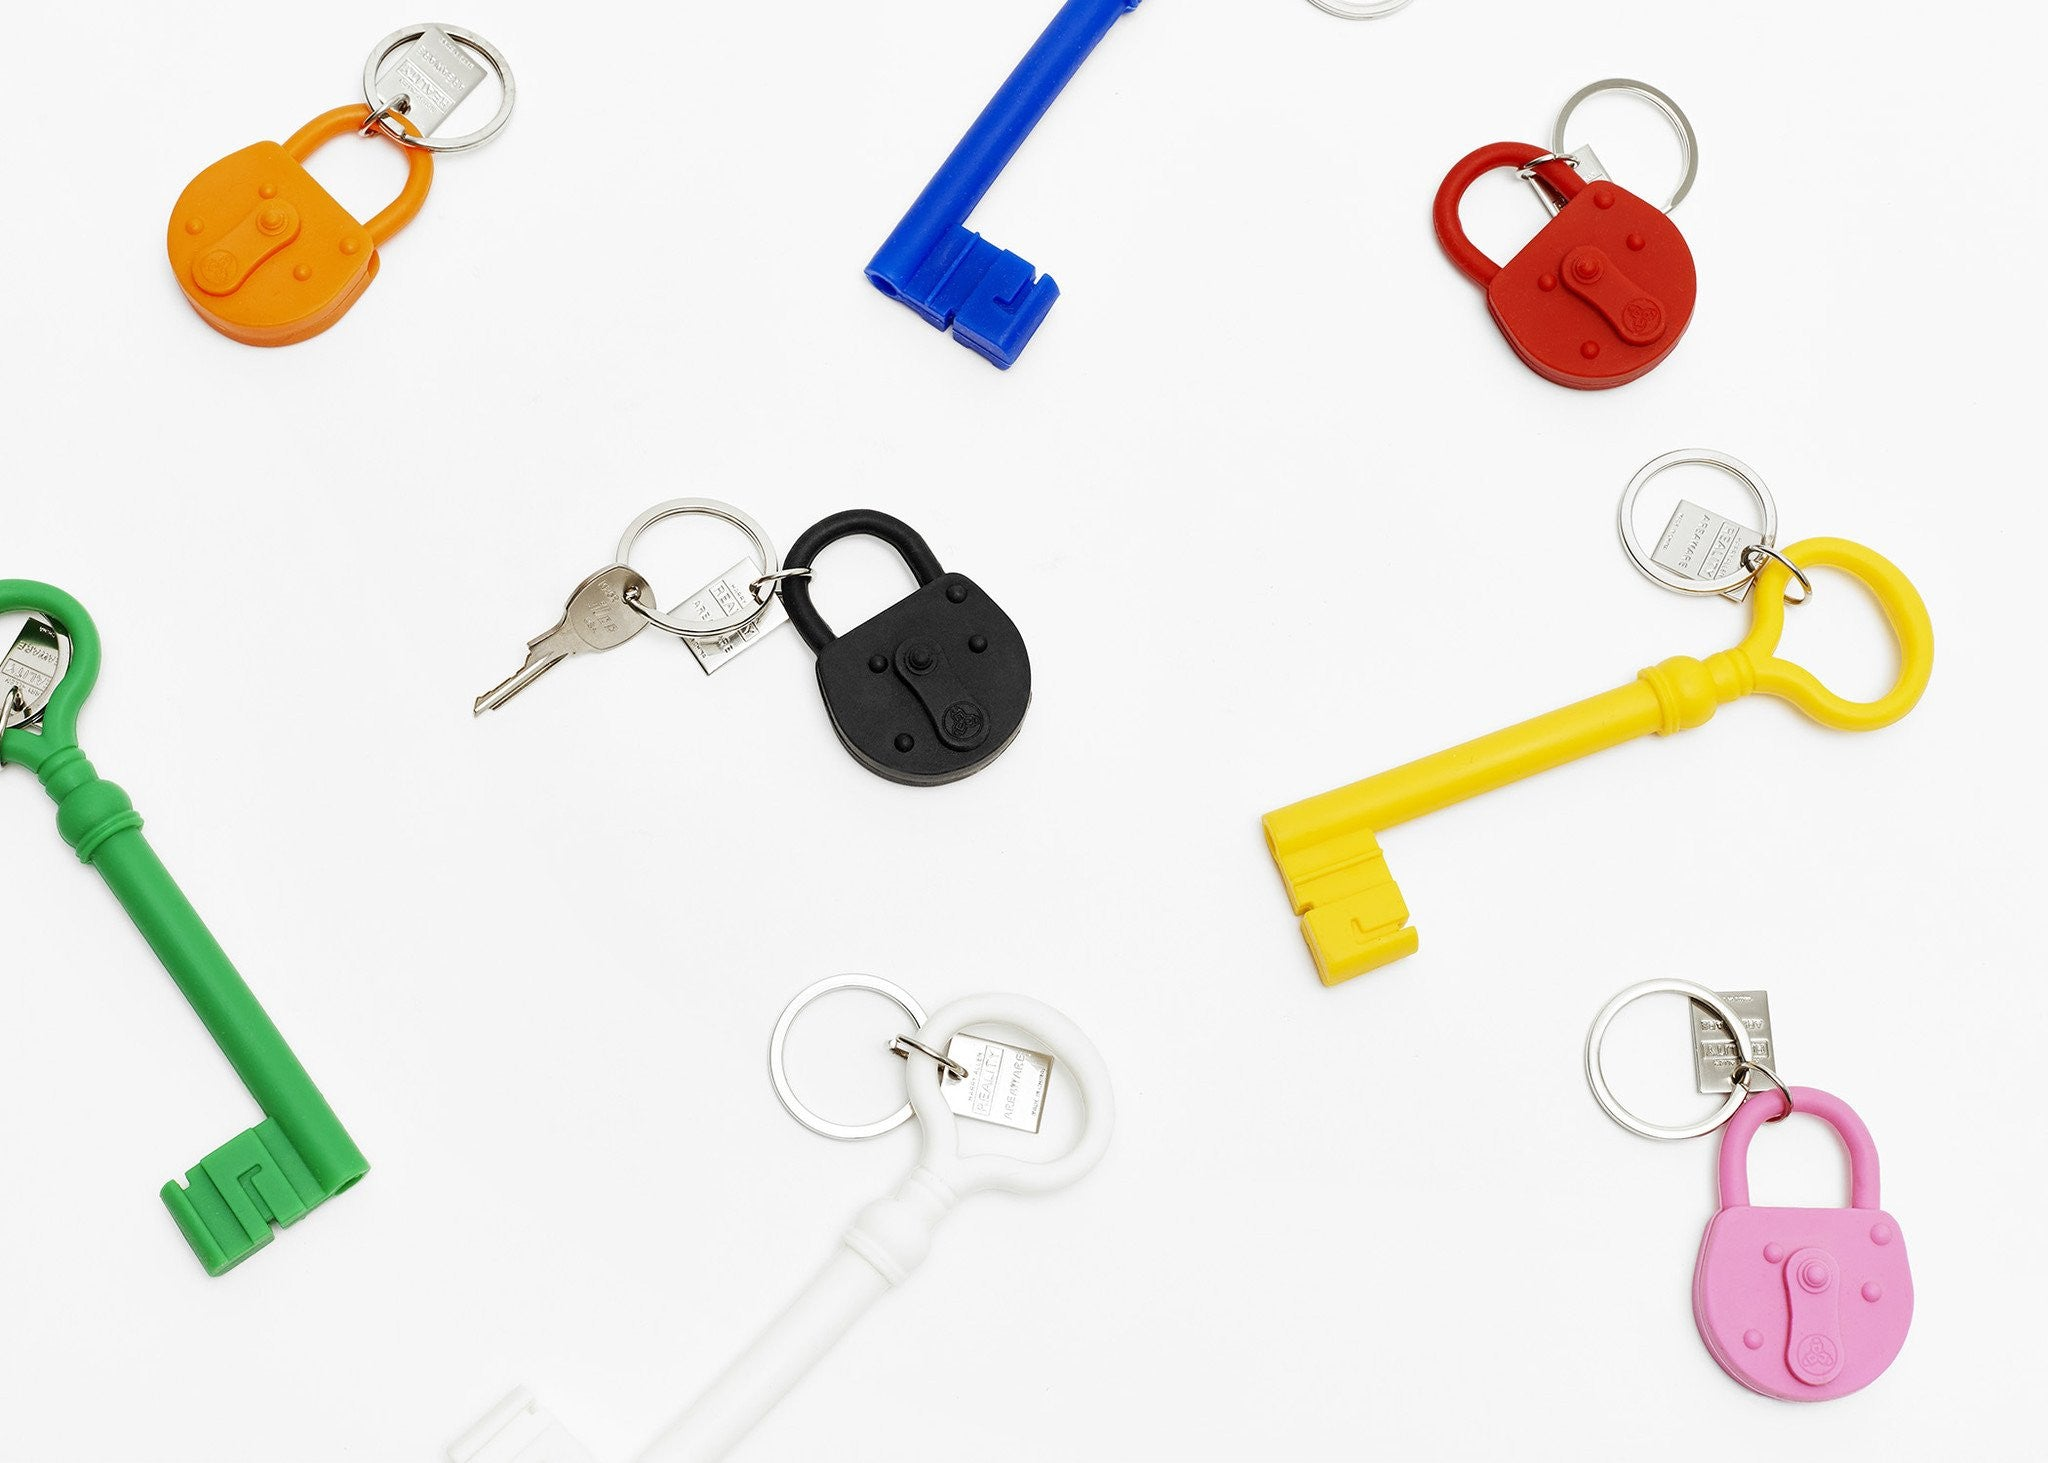 REALITY LOCK KEYCHAIN